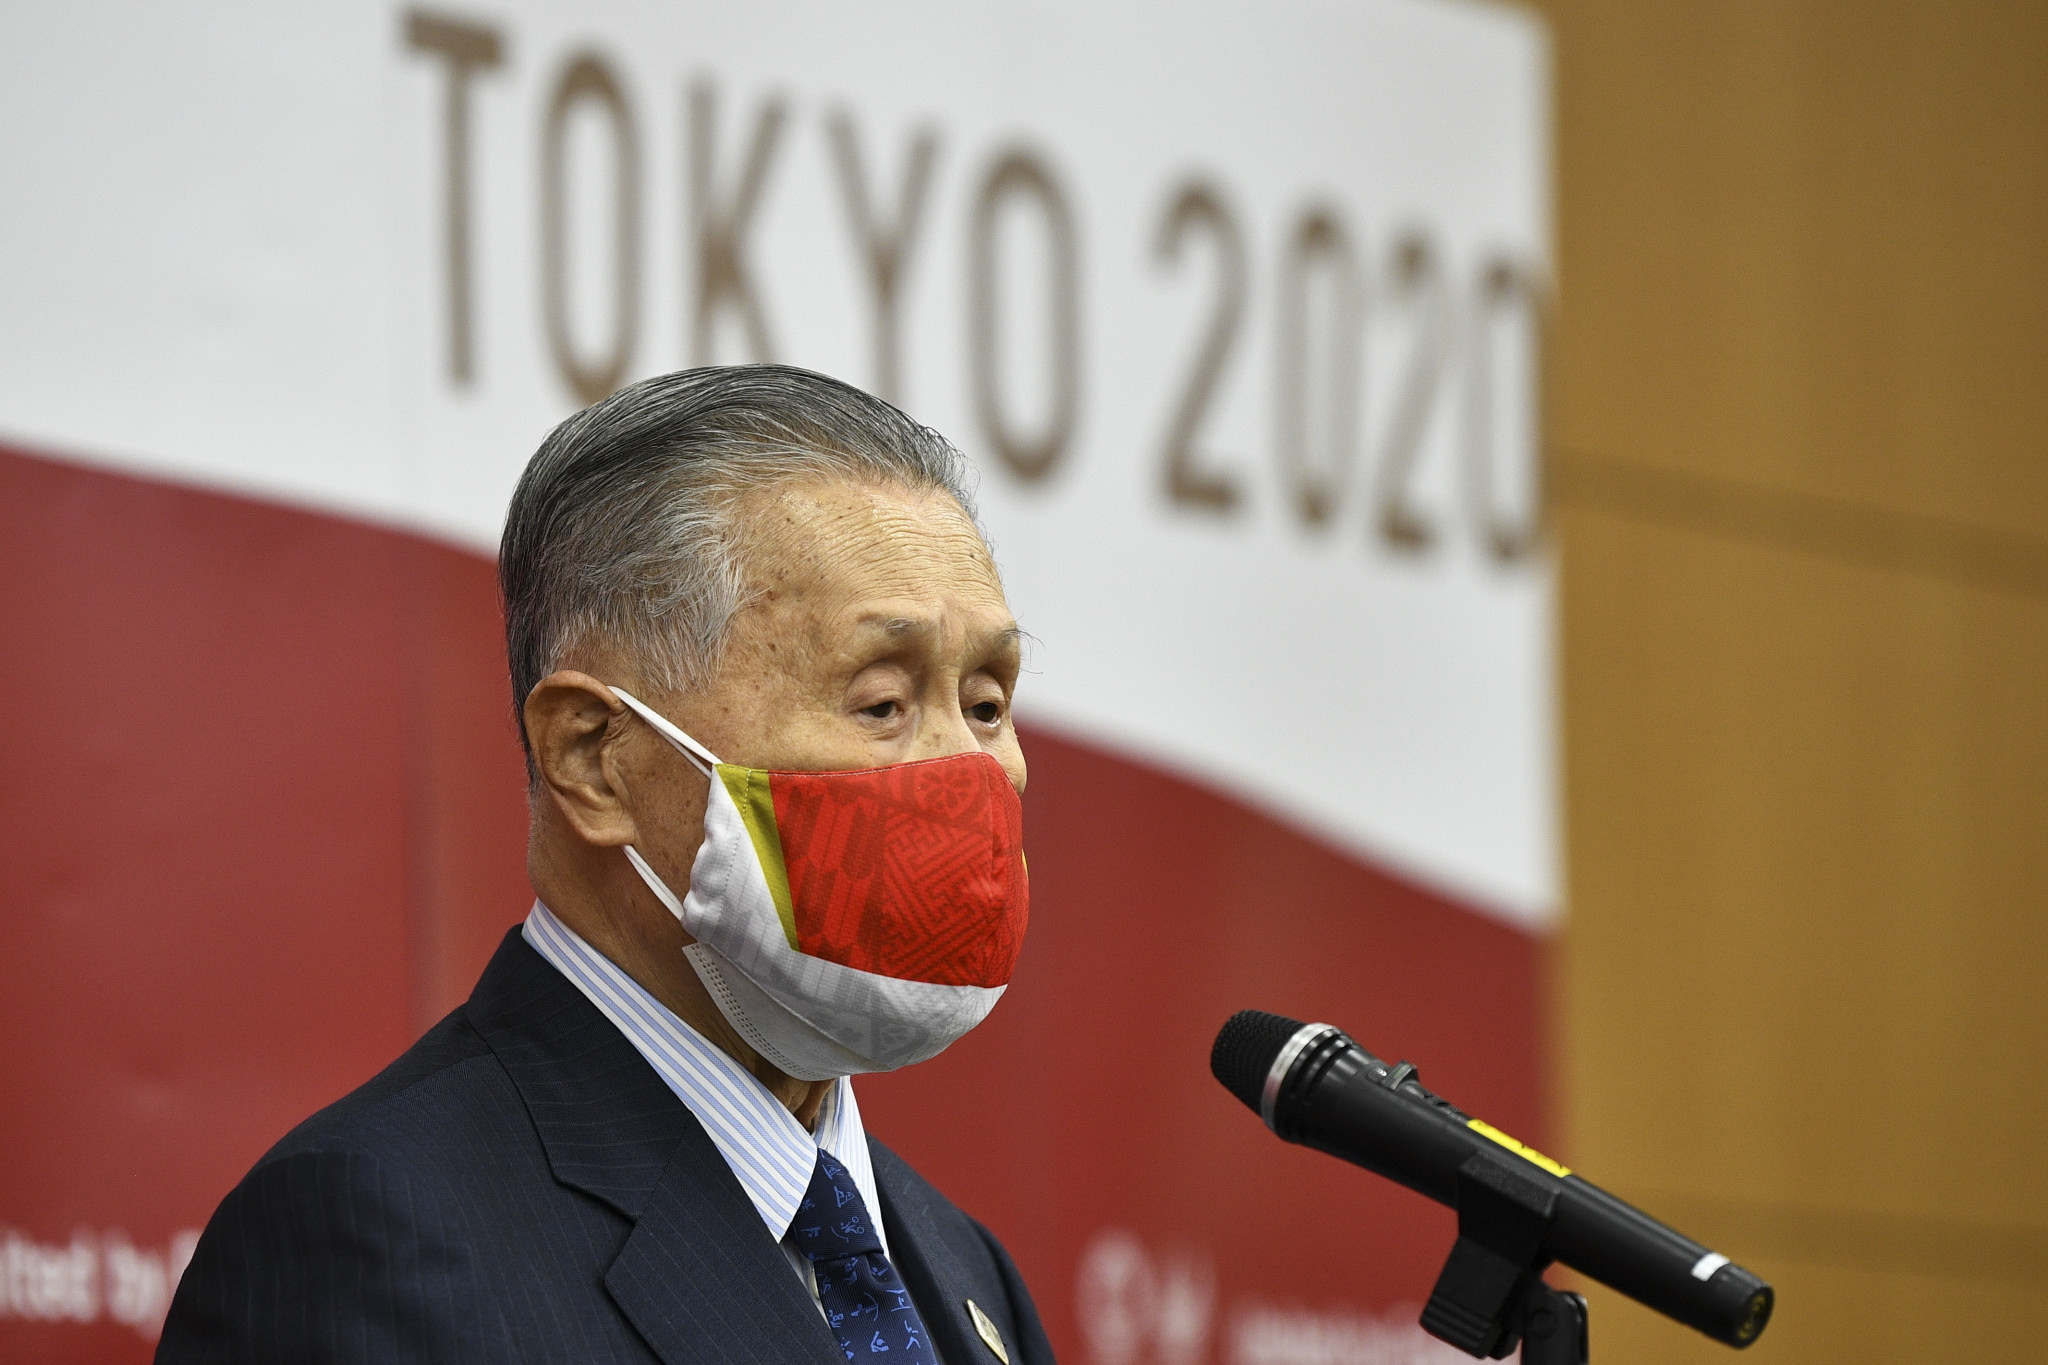 Tokyo 2020 President Yoshirō Mori claimed a decision on spectators at Tokyo 2020 will be made in March ©Getty Images